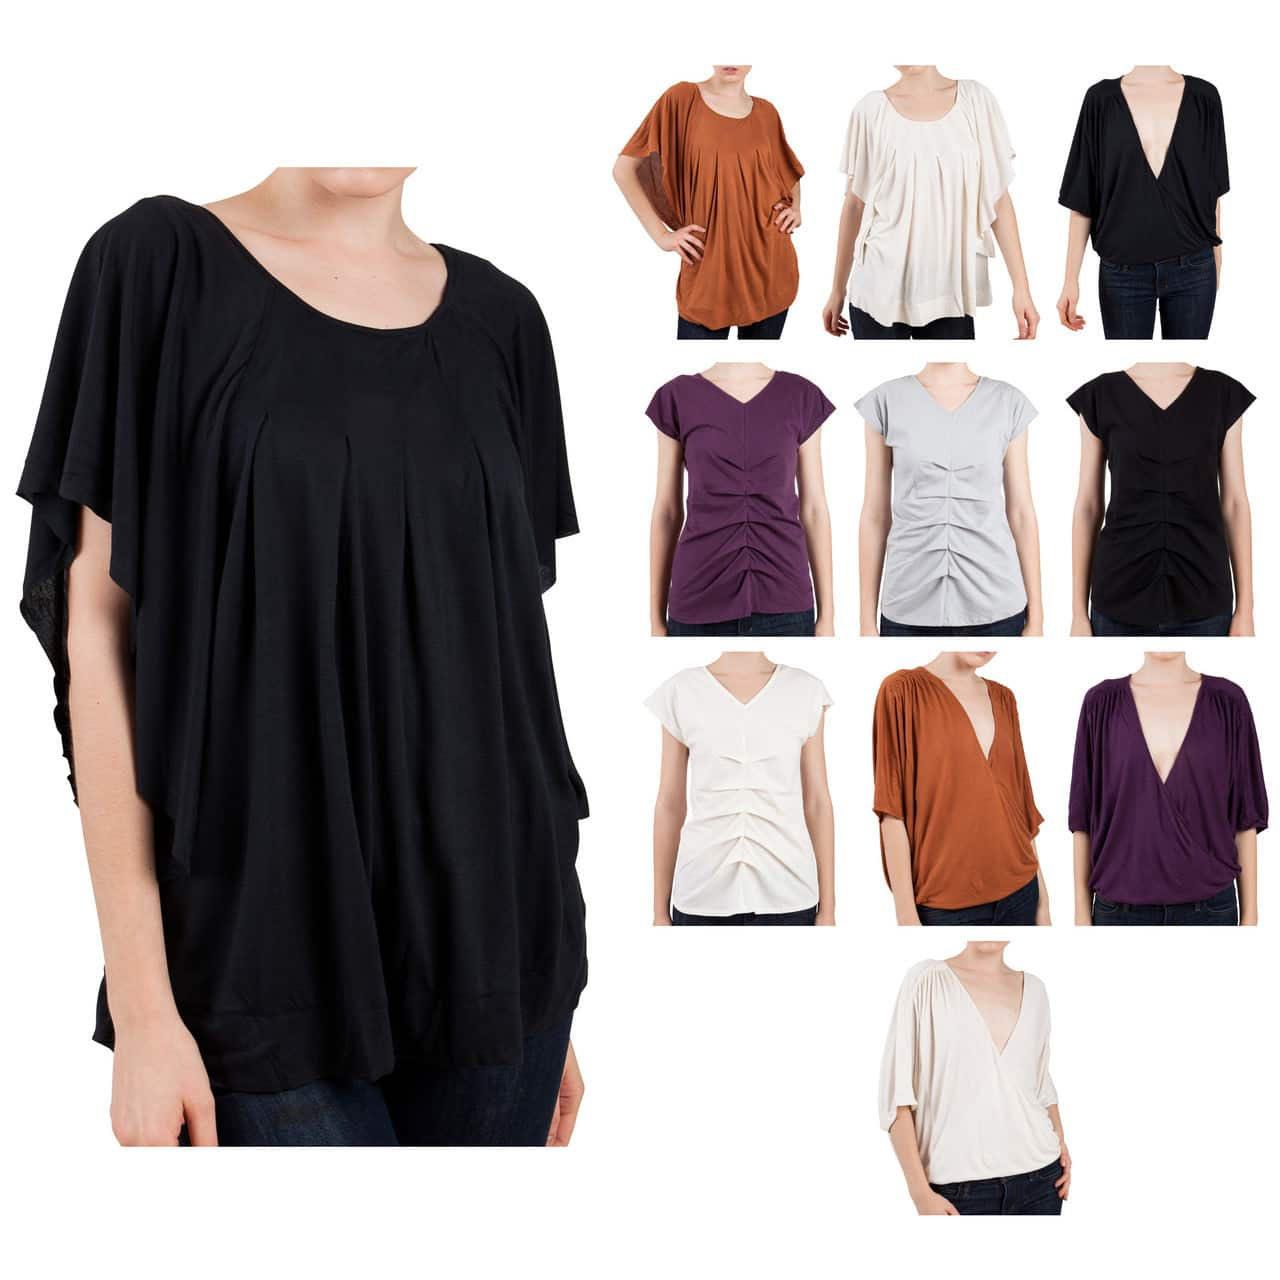 Women's Tunic Style Viscose Blouse (various) 3 for $8 ($2.67 each) + free shipping